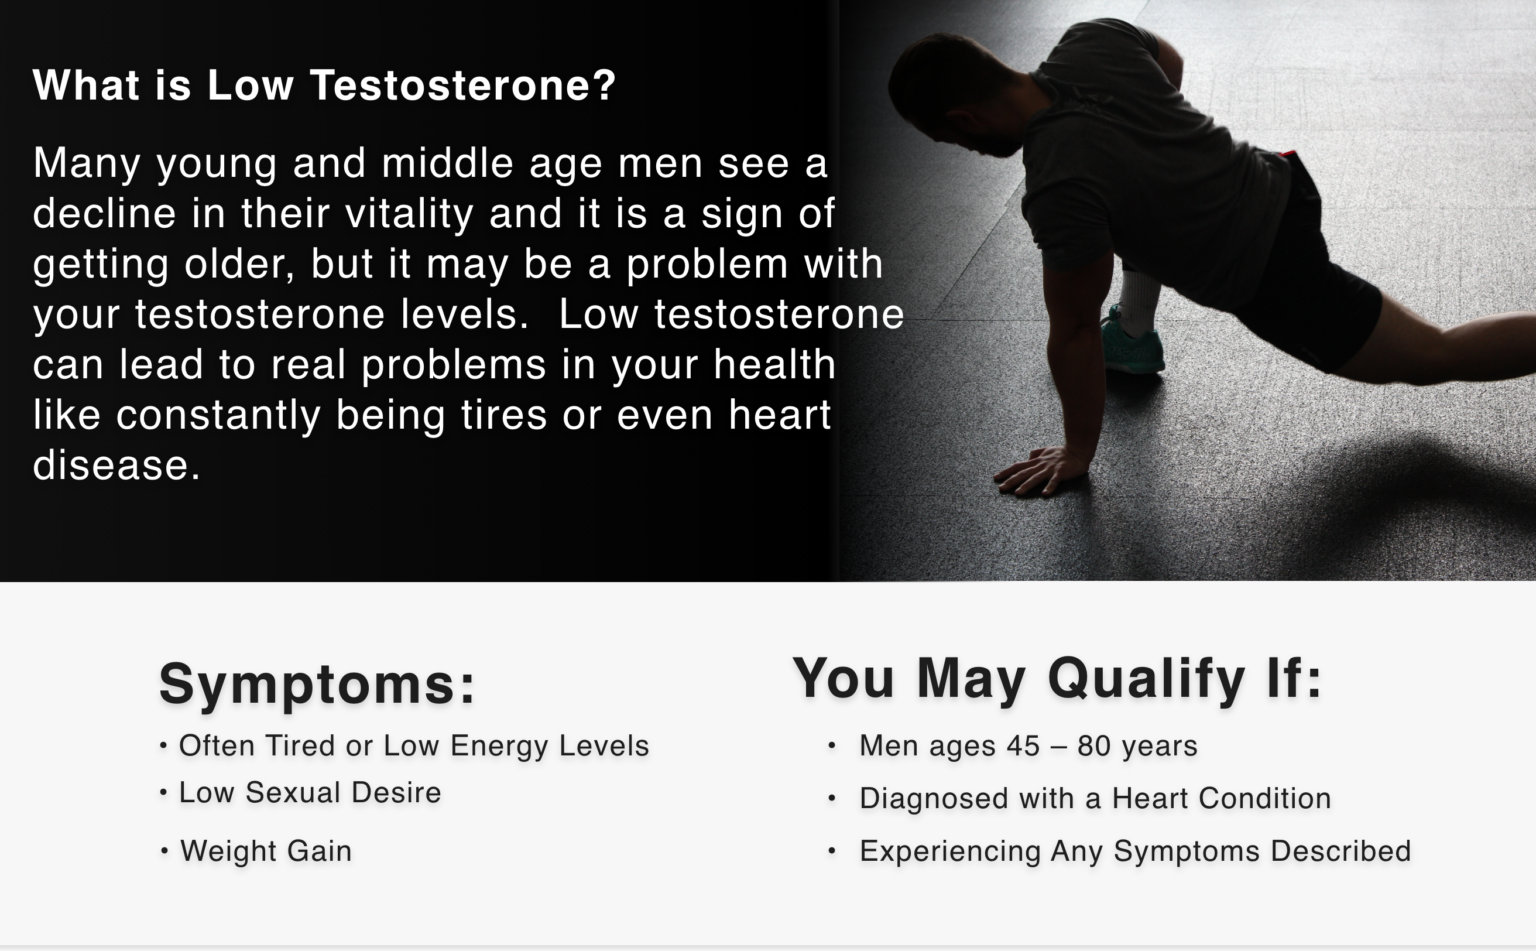 low-testosterone-landing-page-info